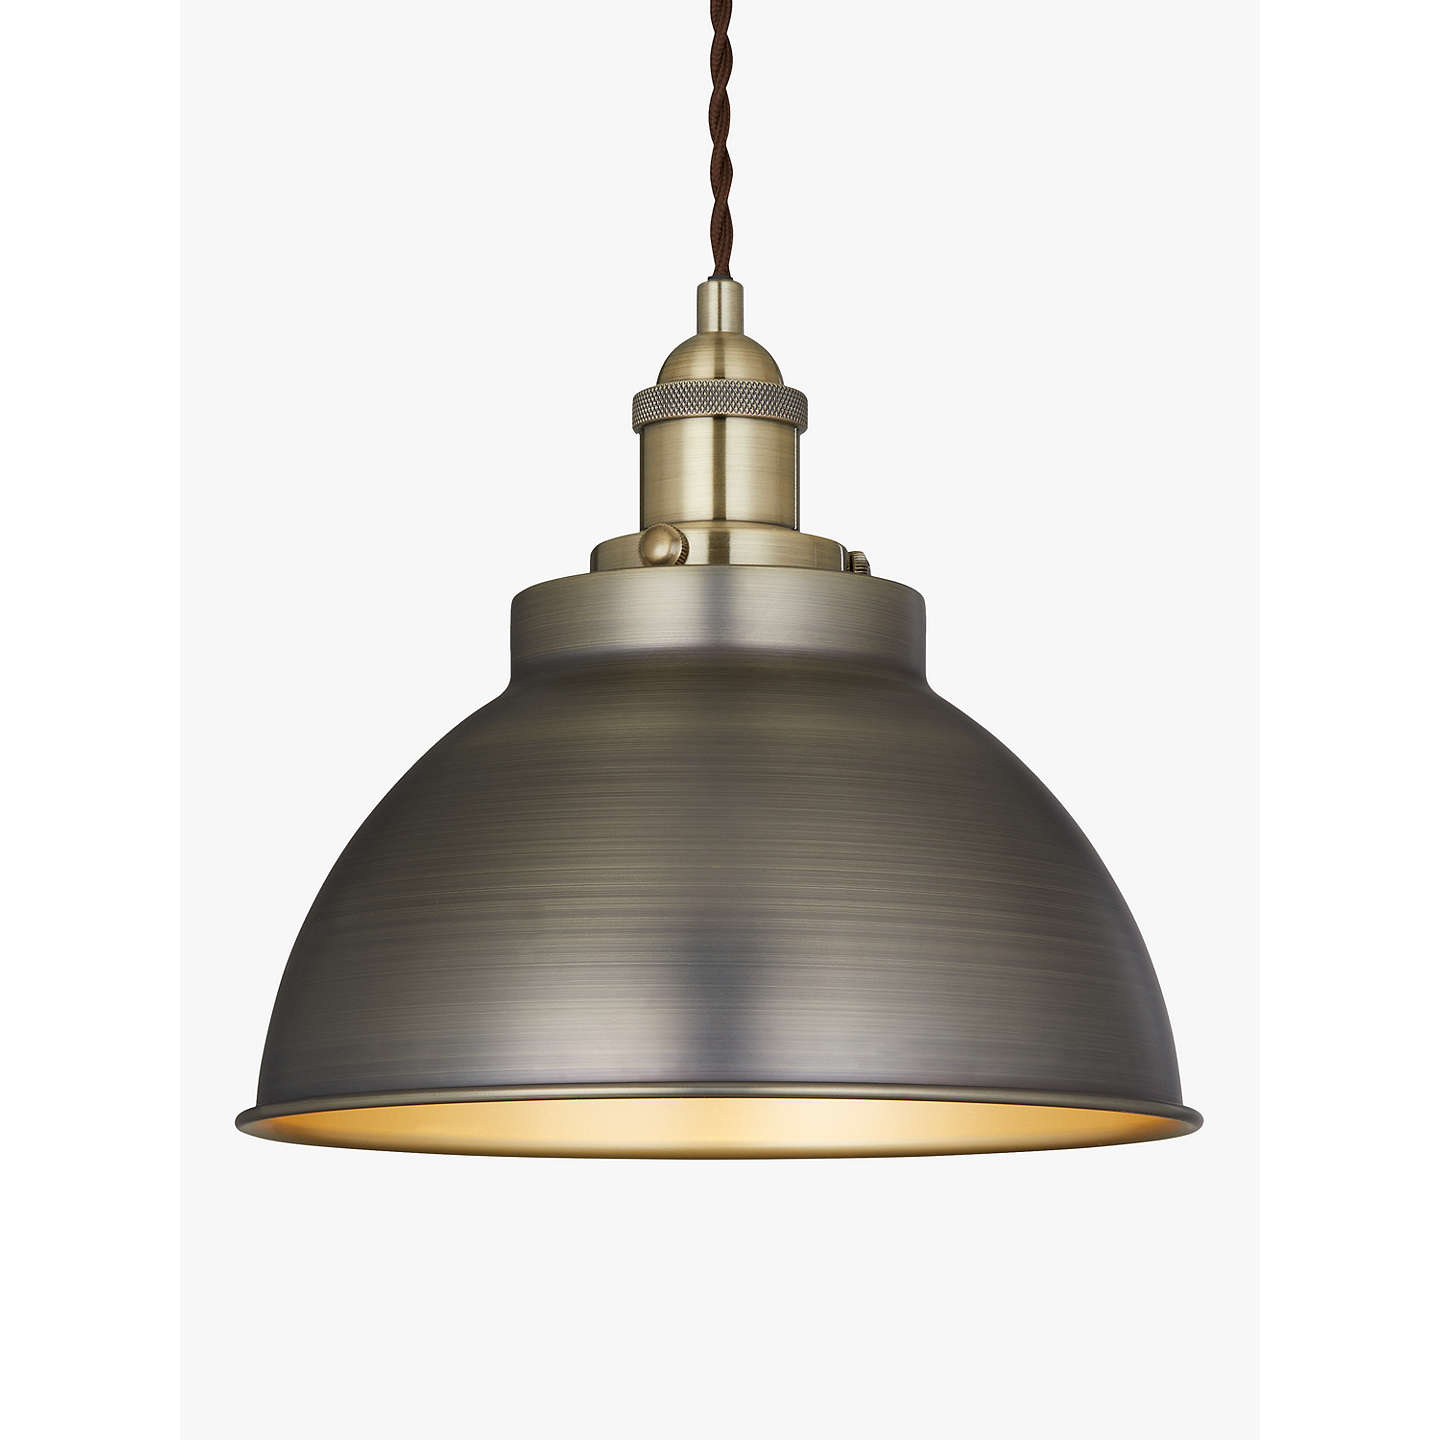 brass eclectic goods kathryn light product pendant com eclecticgoods